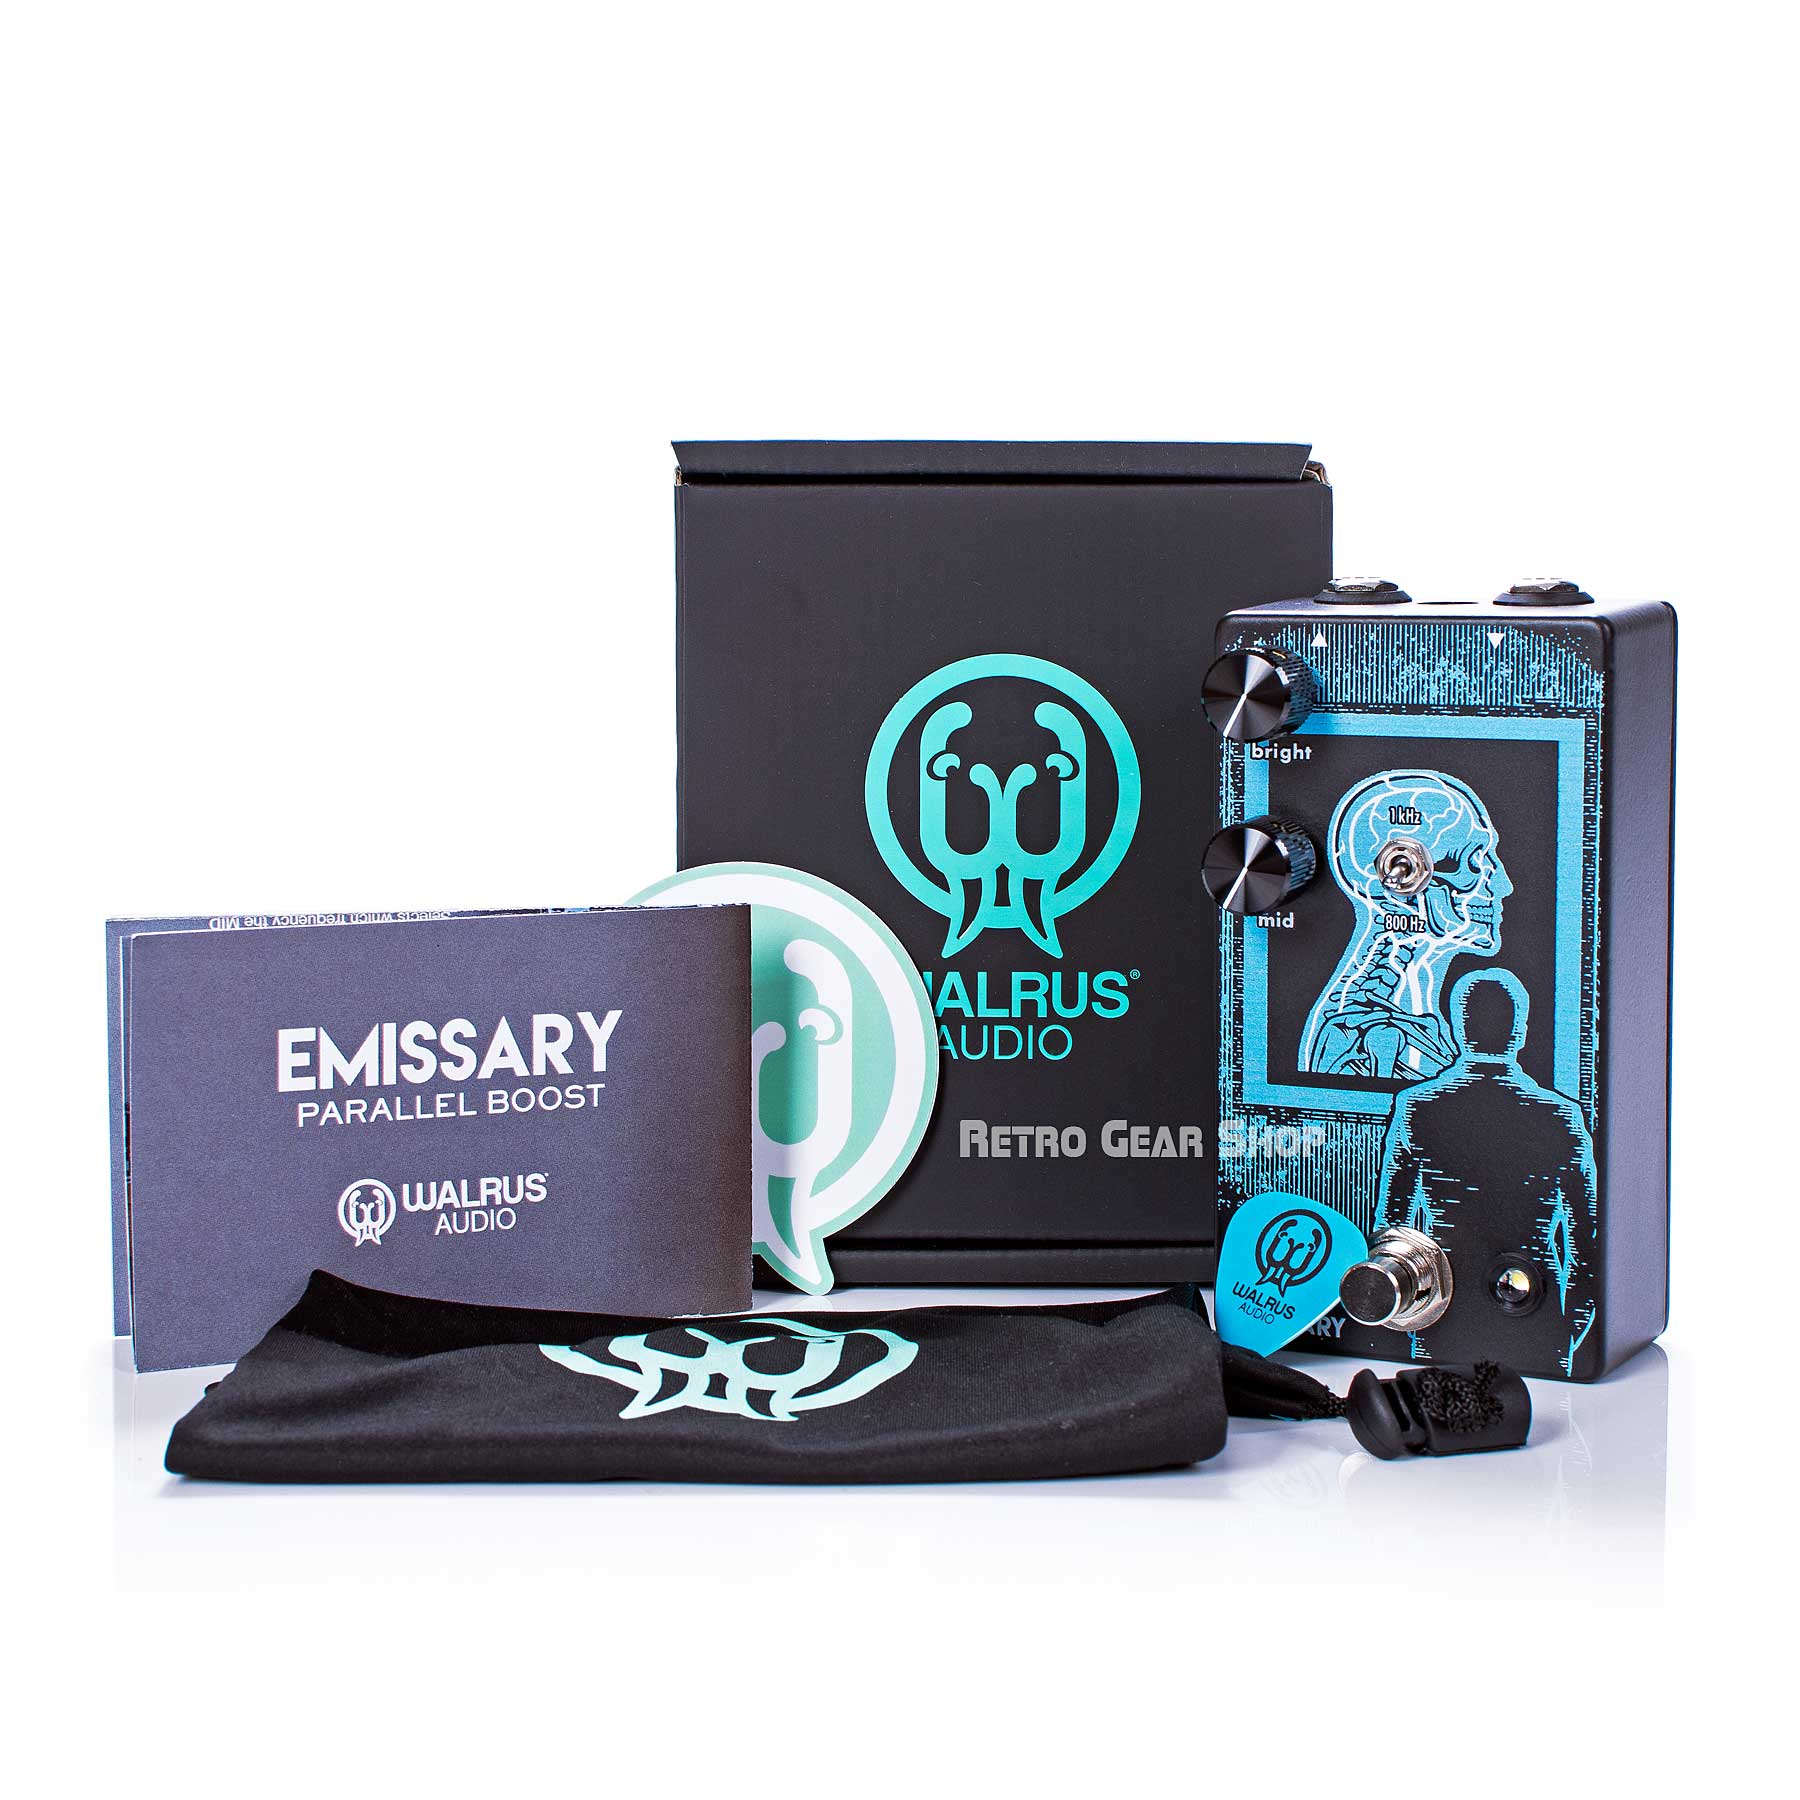 Walrus Audio Emissary Parallel Boost Box Extras Manual